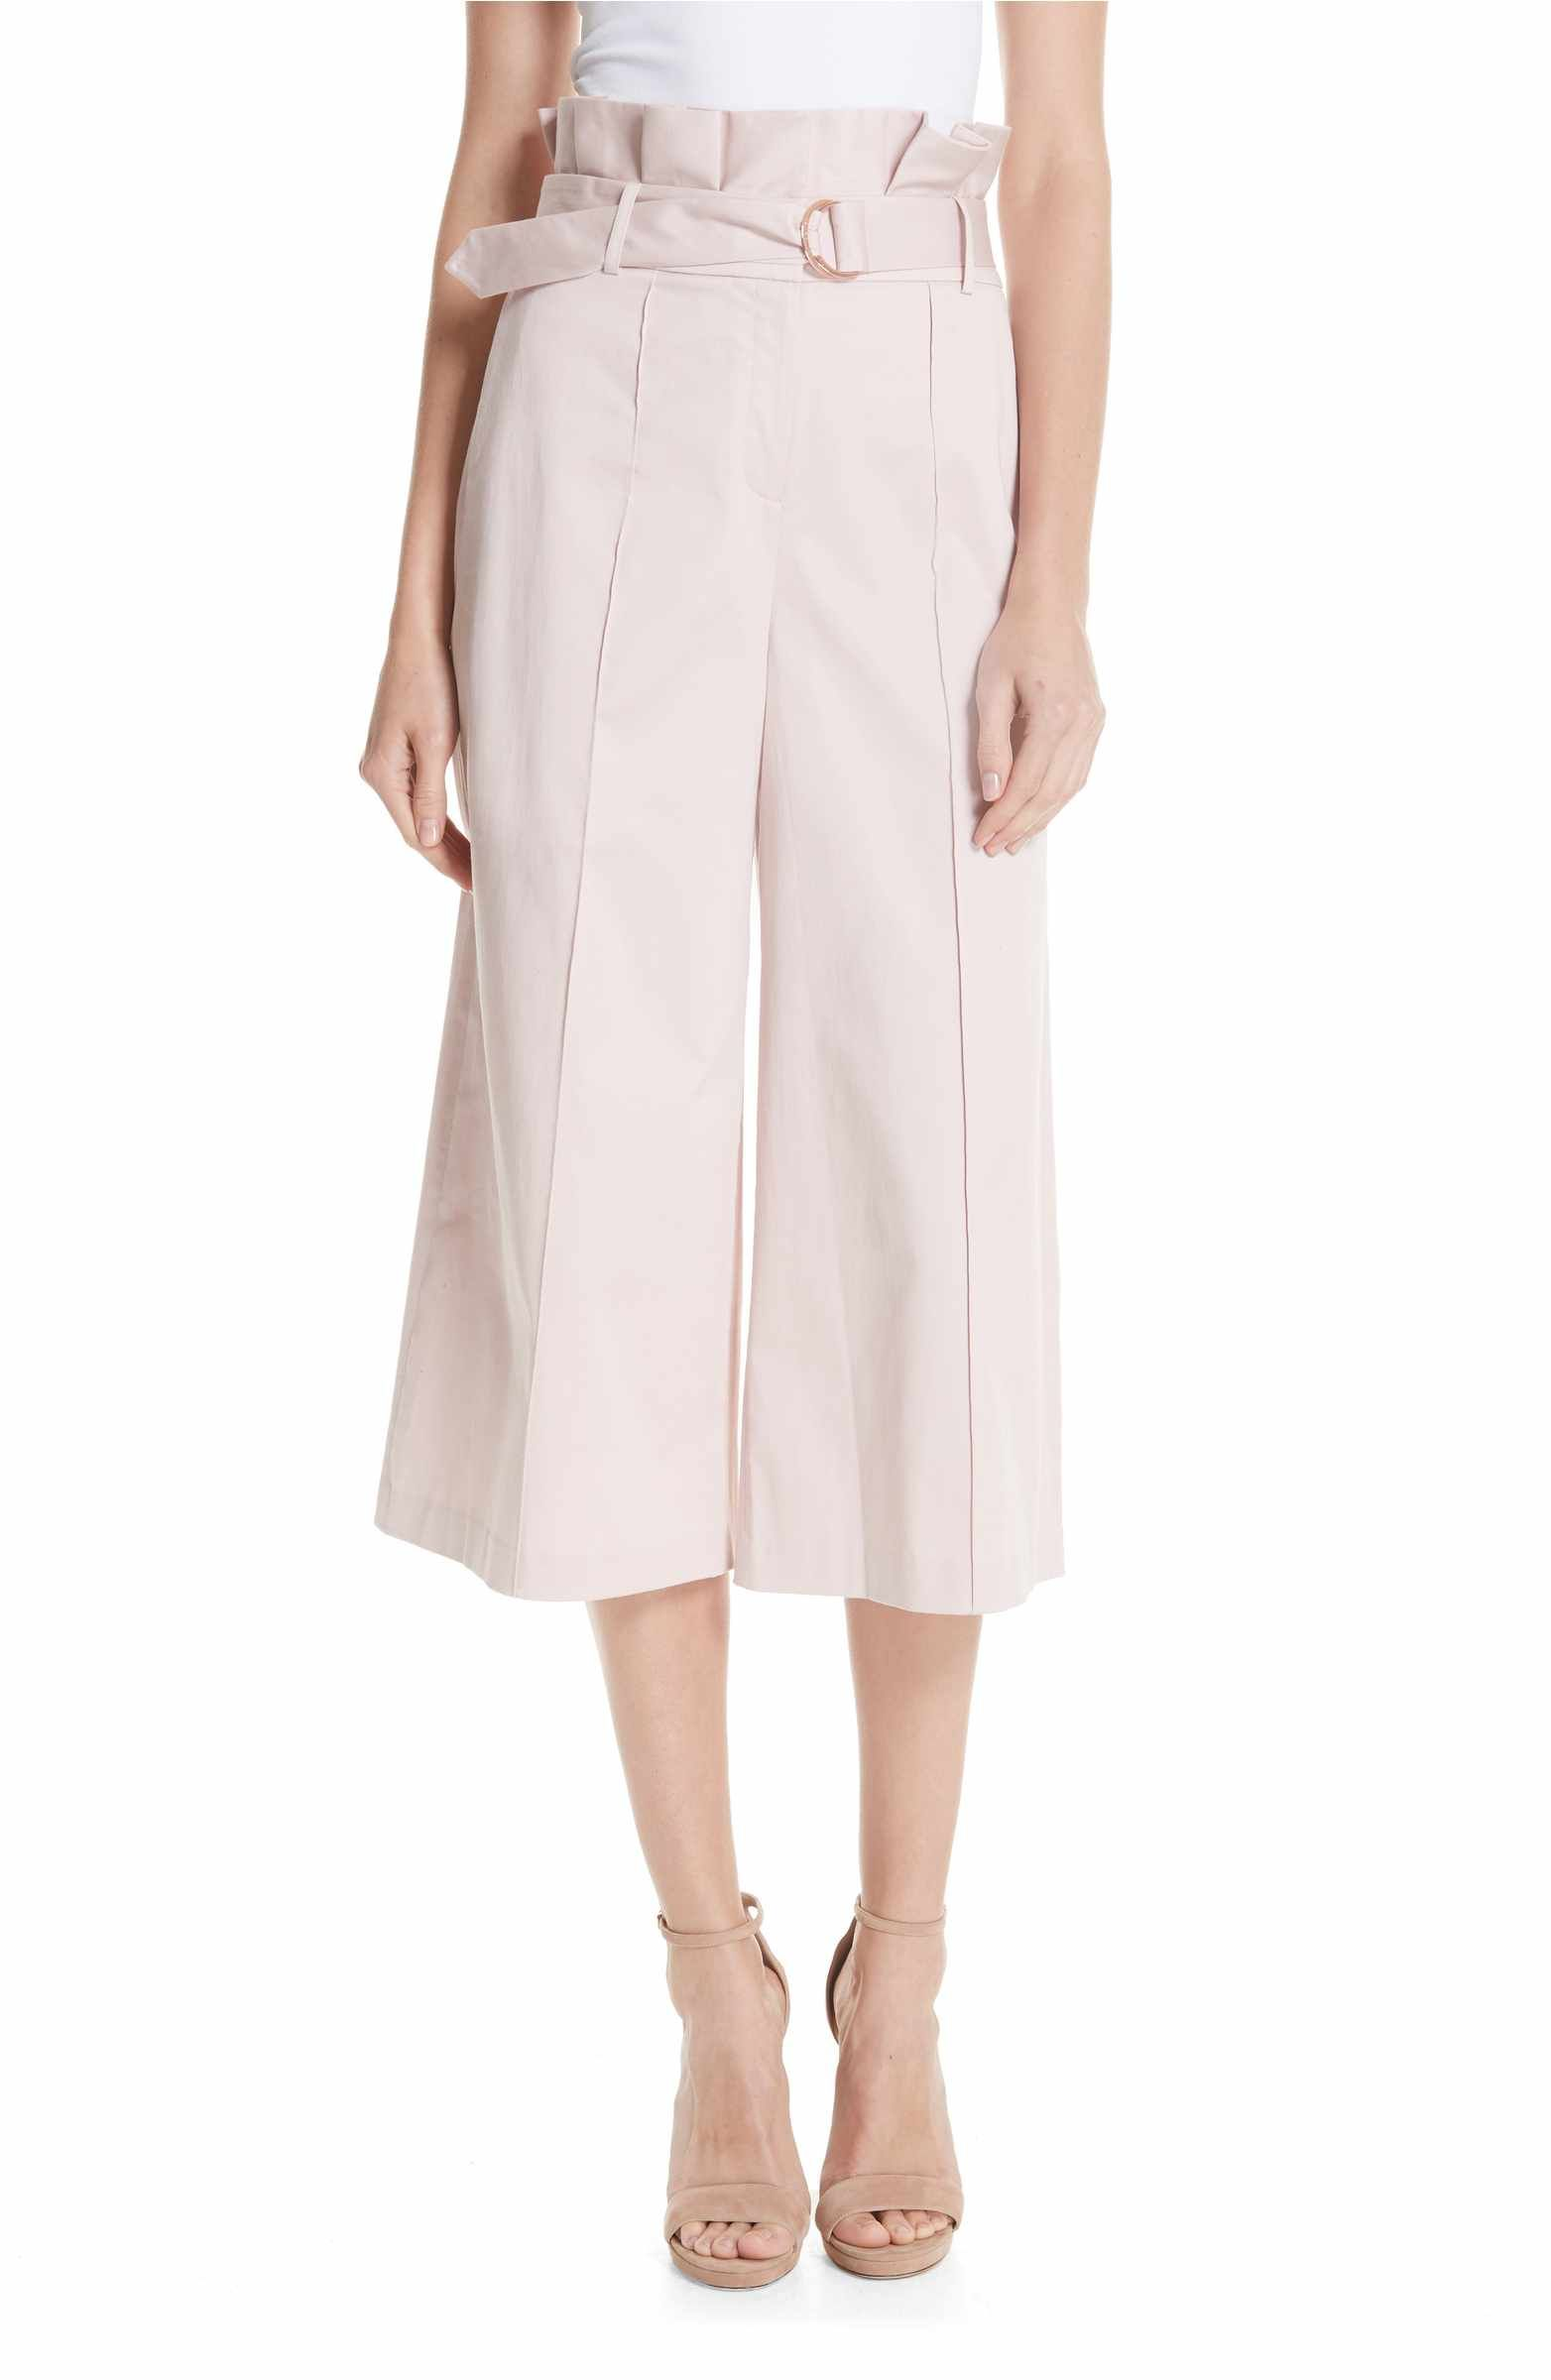 690100ddff1e05 Main Image - Ted Baker London Callie Paperbag Waist Pants